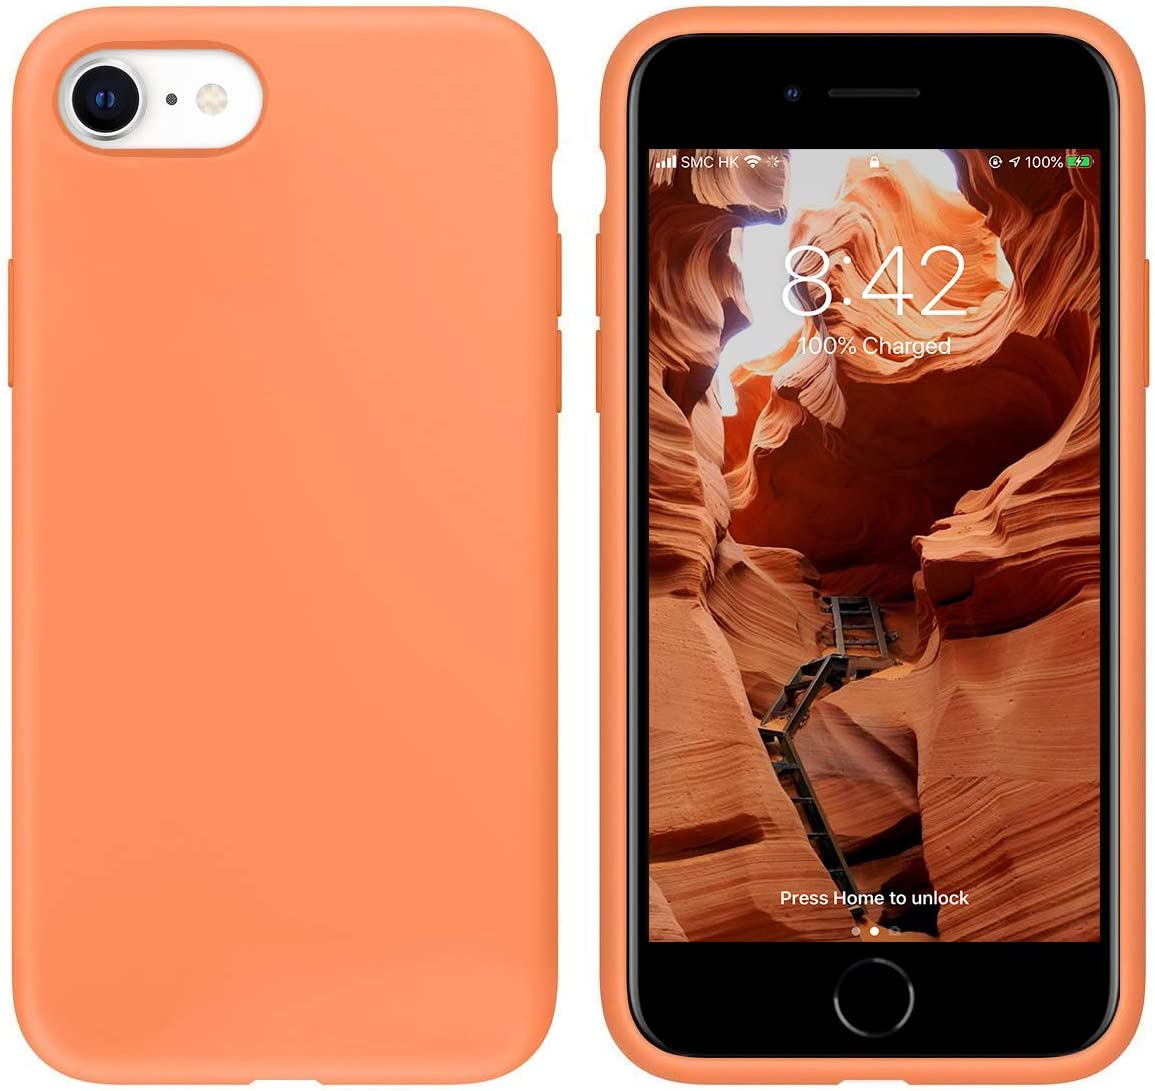 "IceSword iPhone SE 2020 Silicone Case Light Orange [Upgraded 2nd Generation], iPhone 7/8 (4.7""), Liquid Silicone Gel Rubber, Full Body Drop Protection (4.7"") iPhone 7/8/iPhone SE 2020 - Light Orange"